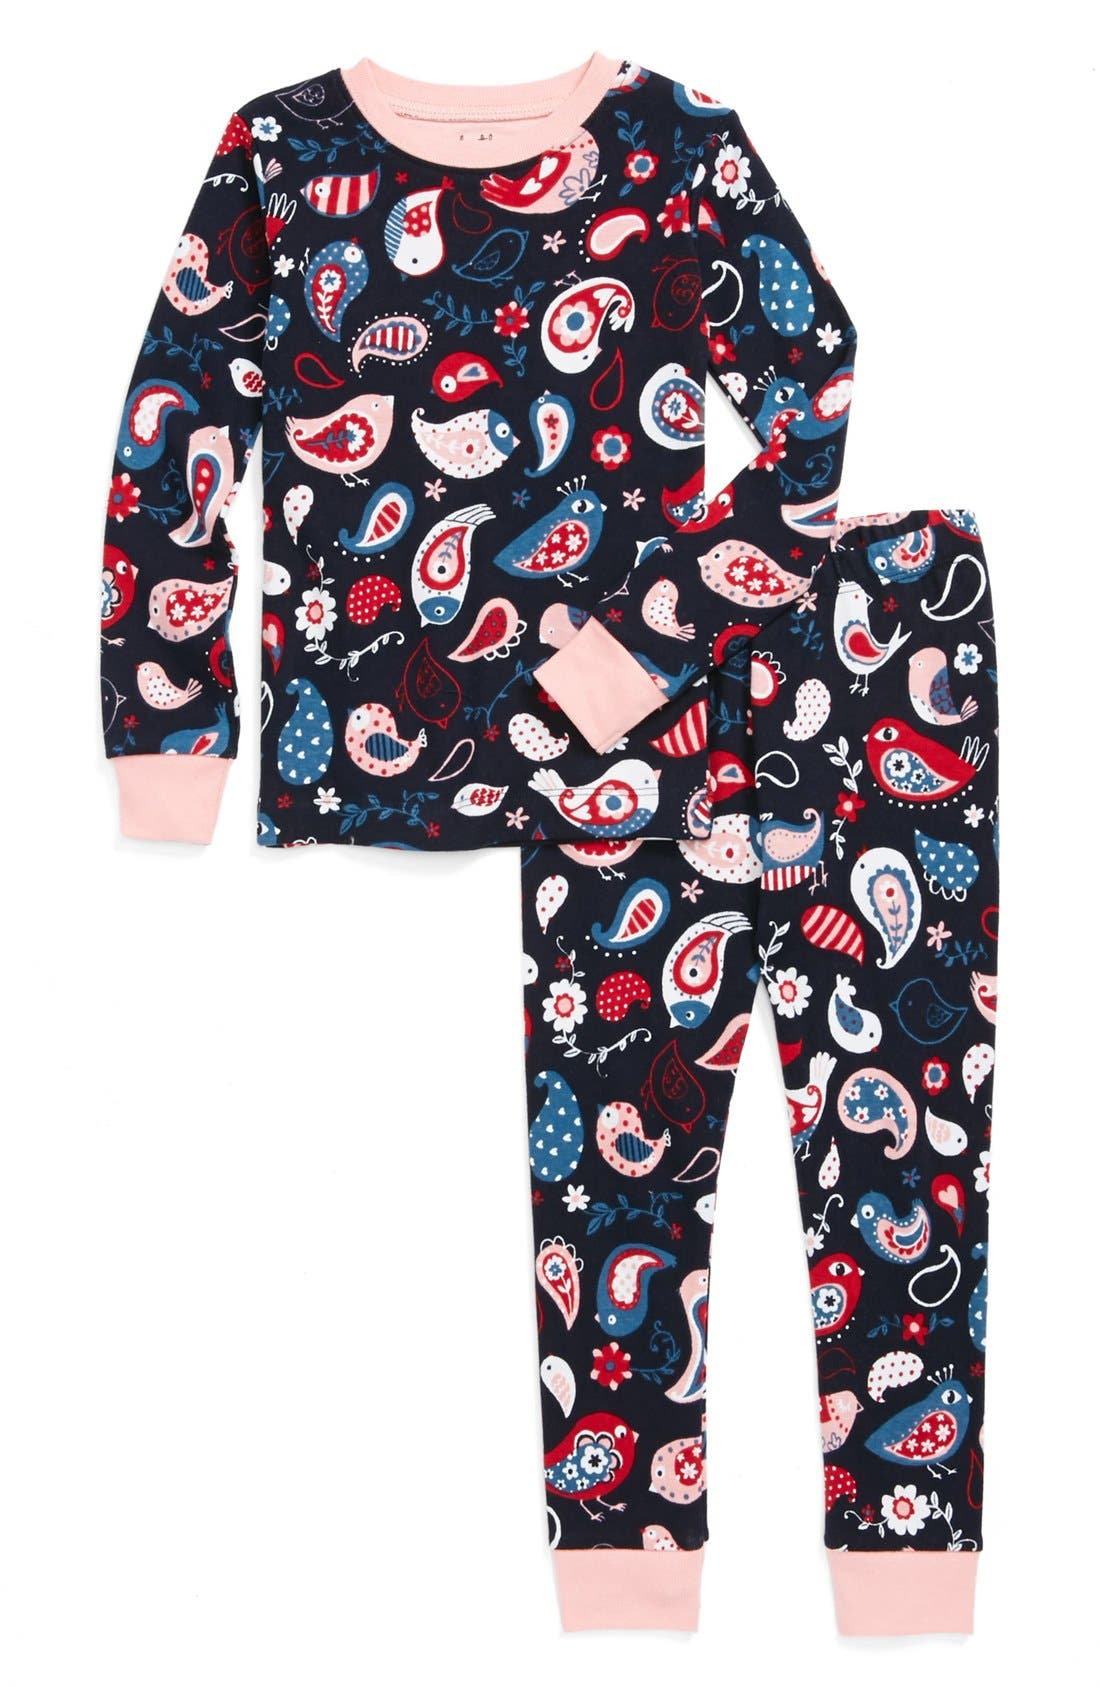 Main Image - Hatley 'Paisley Birds' Two-Piece Fitted Pajamas (Toddler Girls)